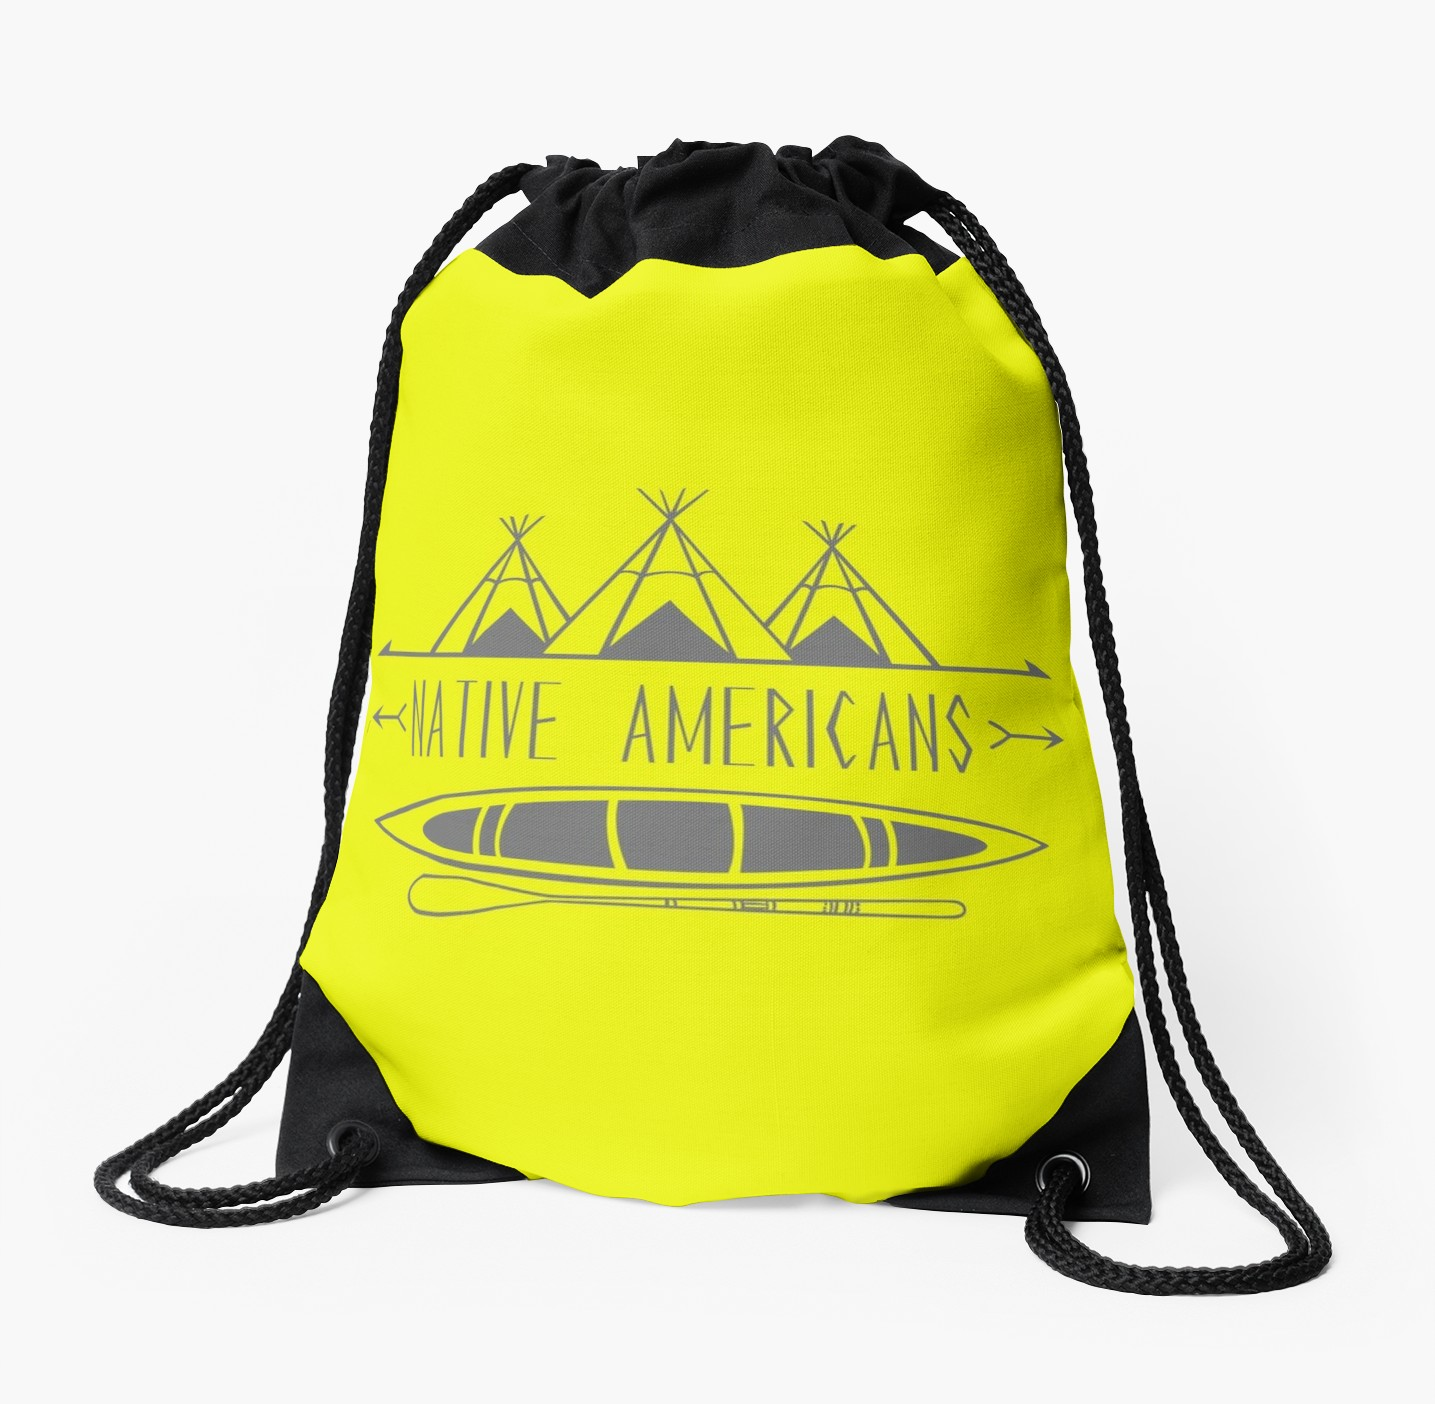 1435x1404 native american clothingnative american artnative american